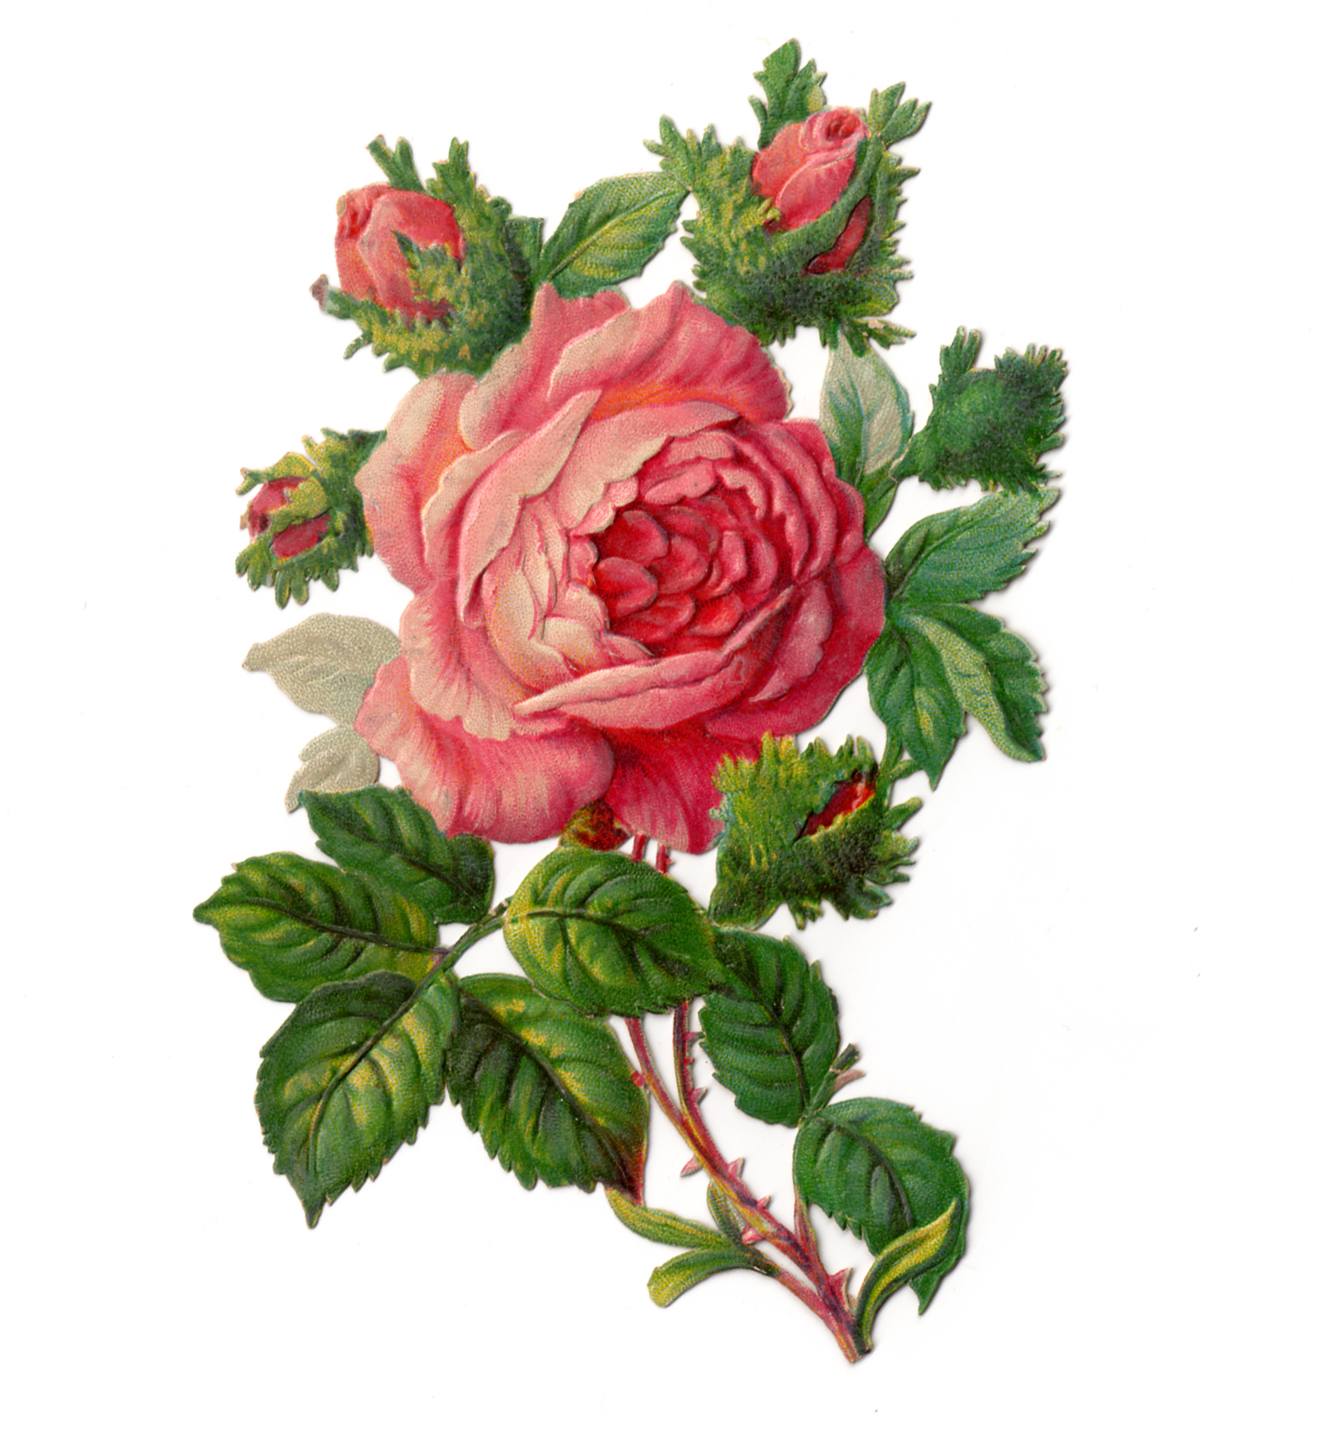 Vintage Clip Art- RoseVictorian Flower Drawings